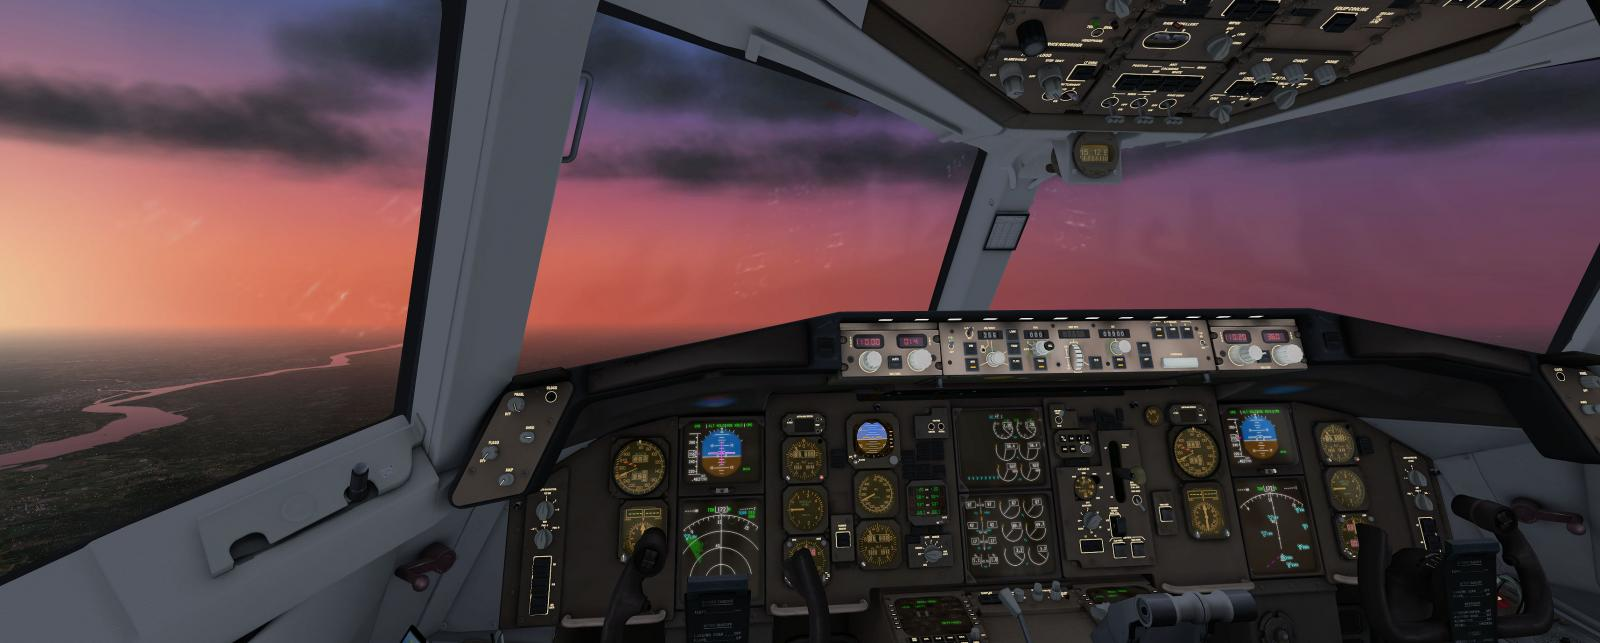 Boeing 757-200v2 Professional - News from Commercial